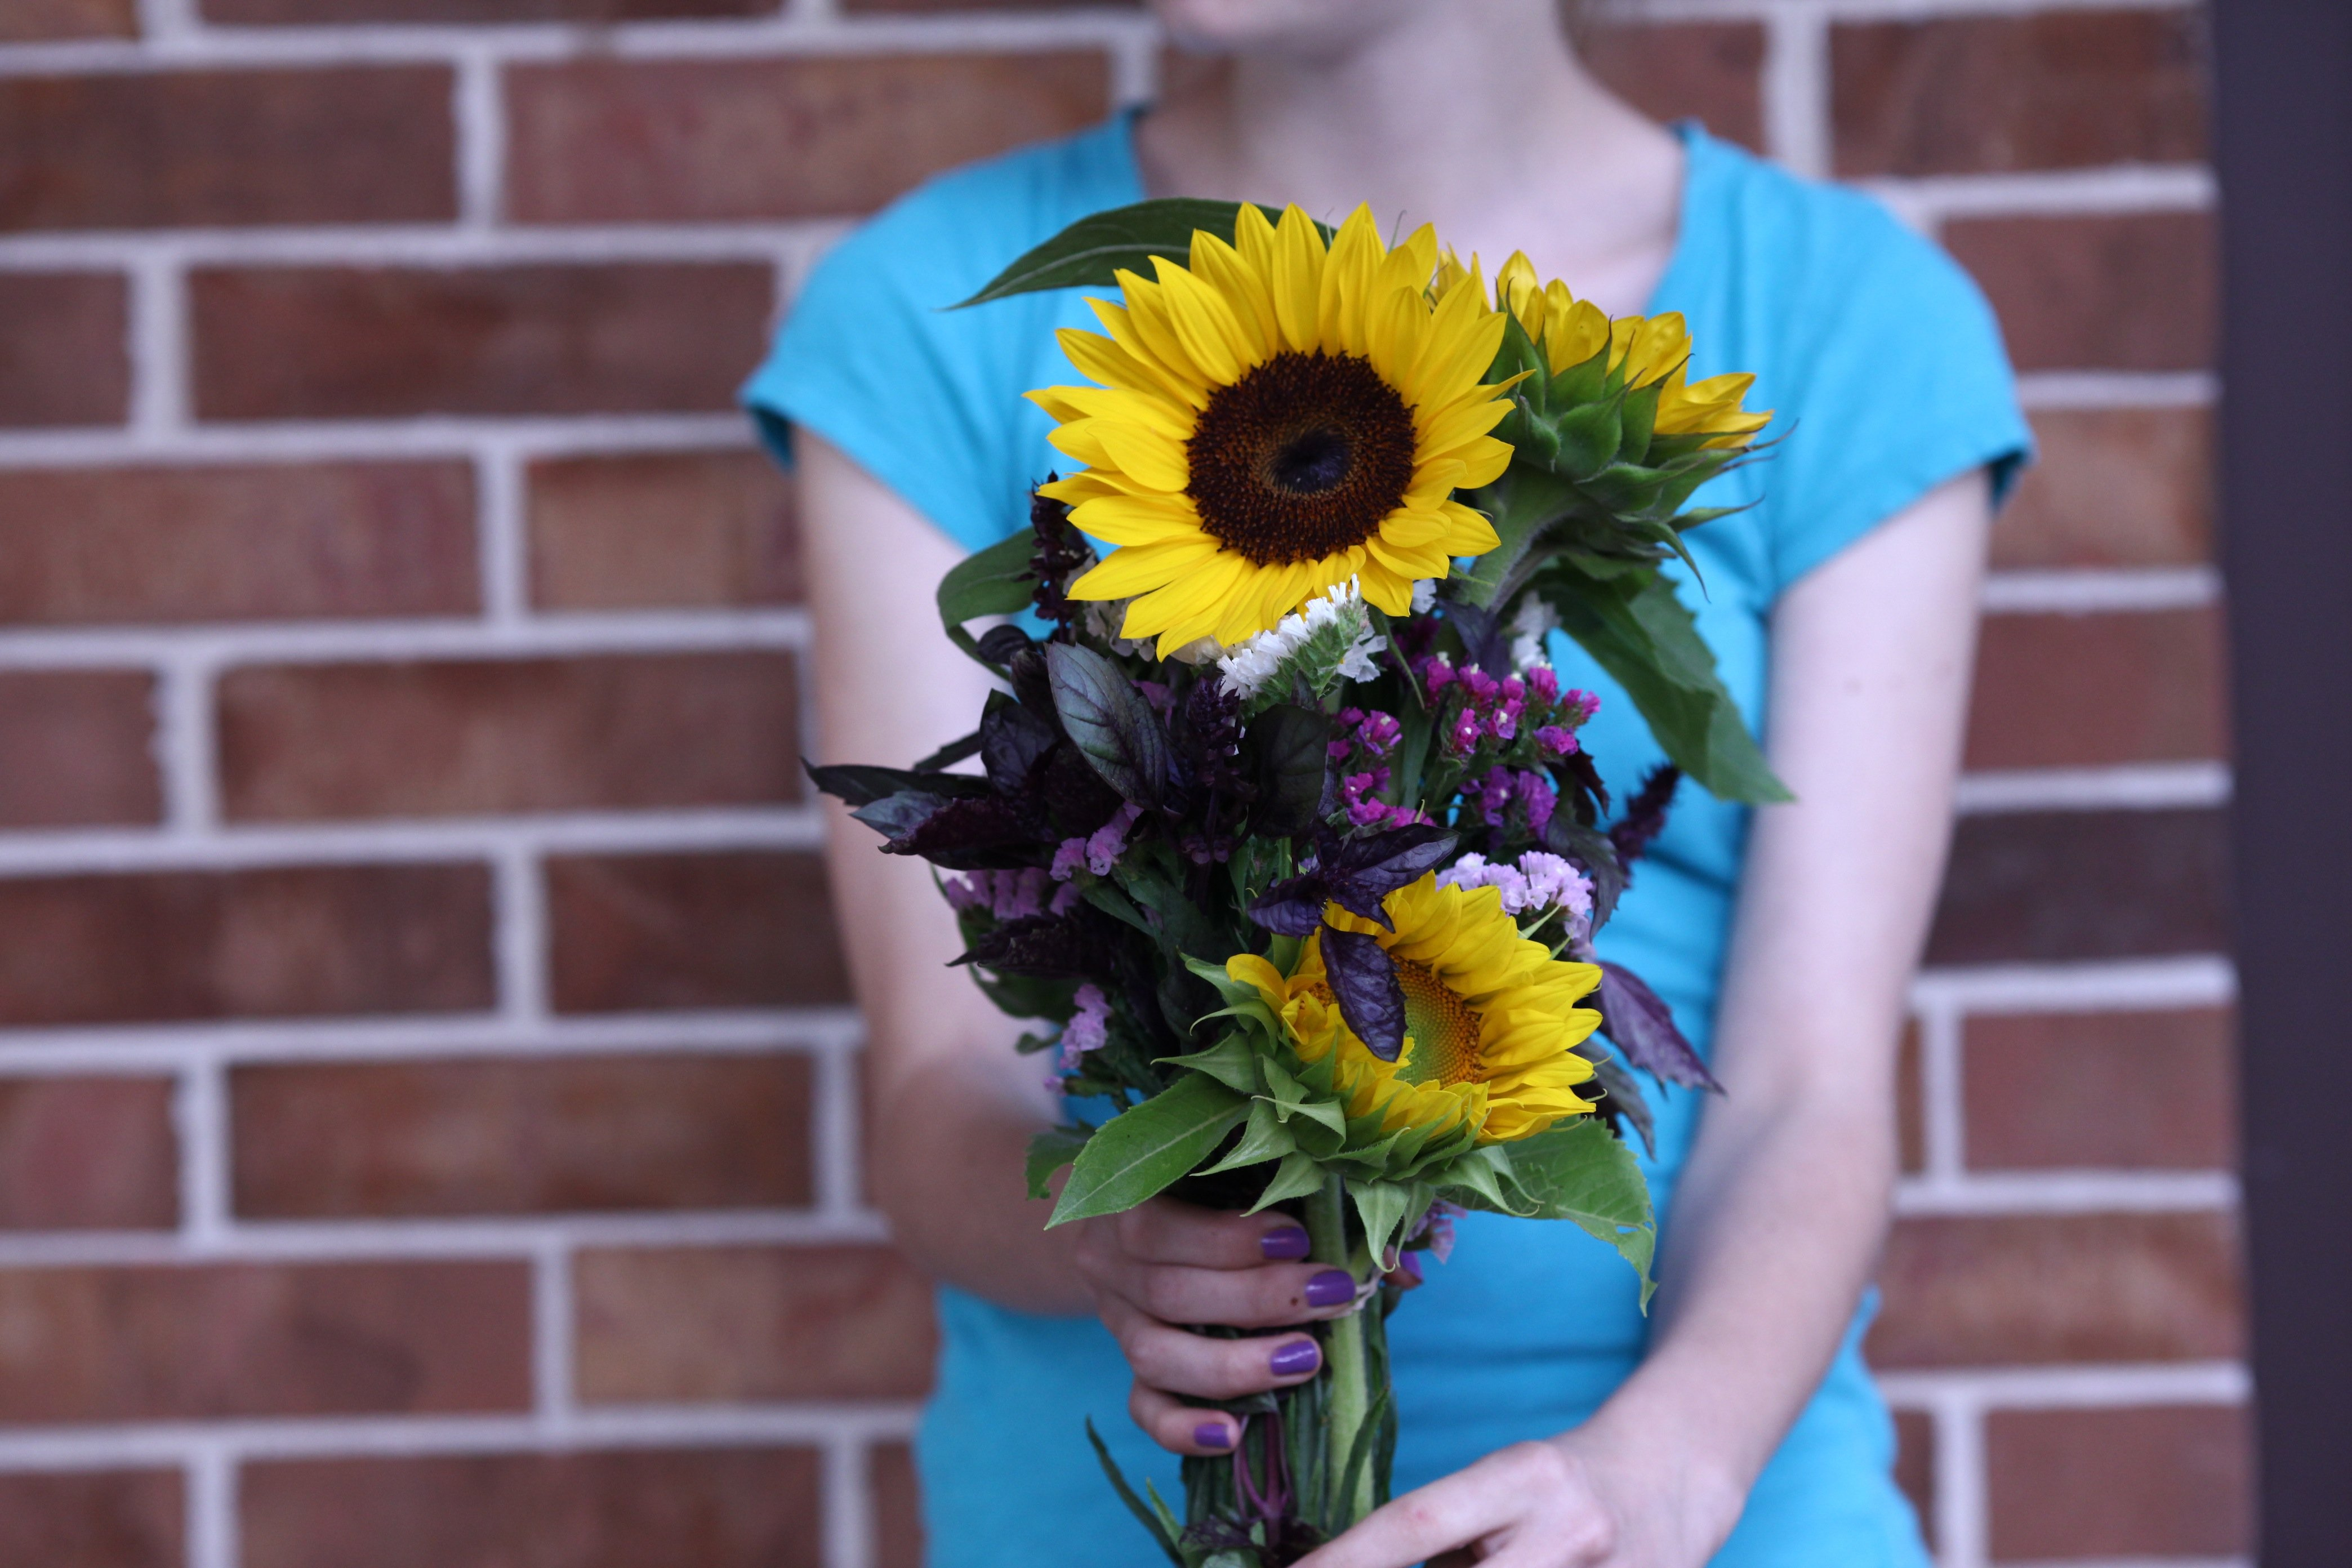 7-19 tay w: sunflower bouquet